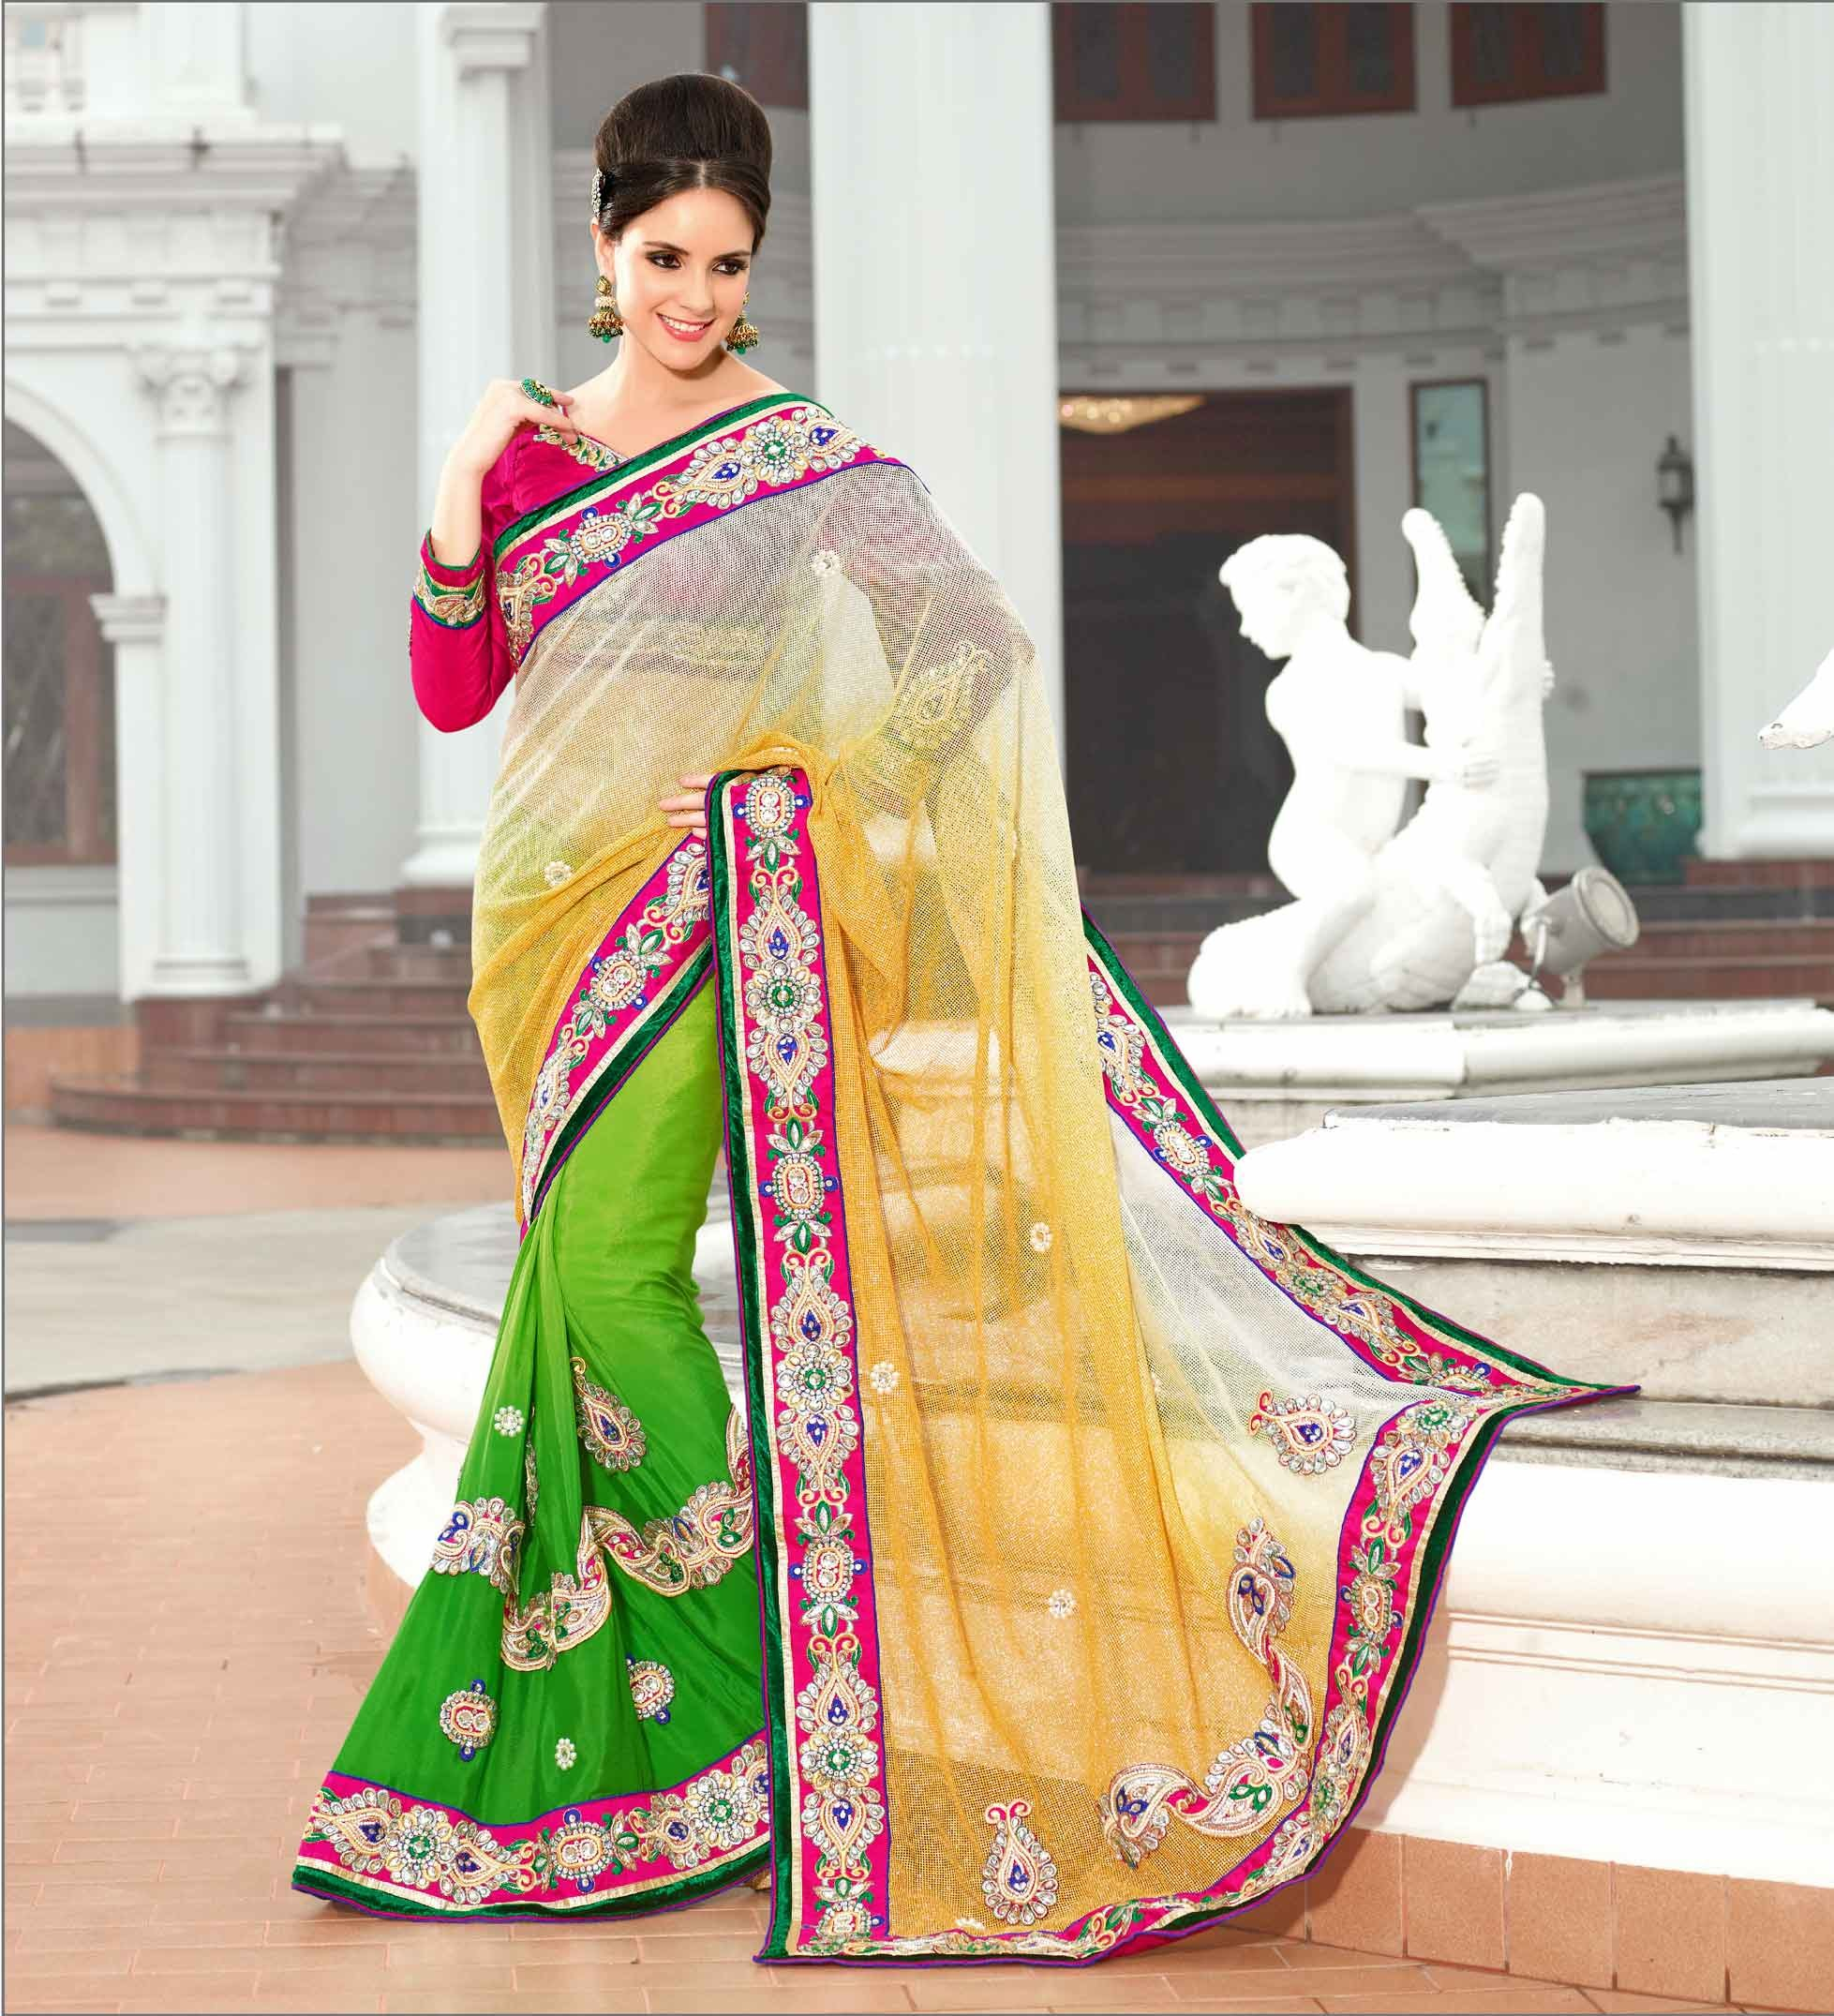 Wedding White Sarees Online: Bollywood Wedding Bridal Saree 119